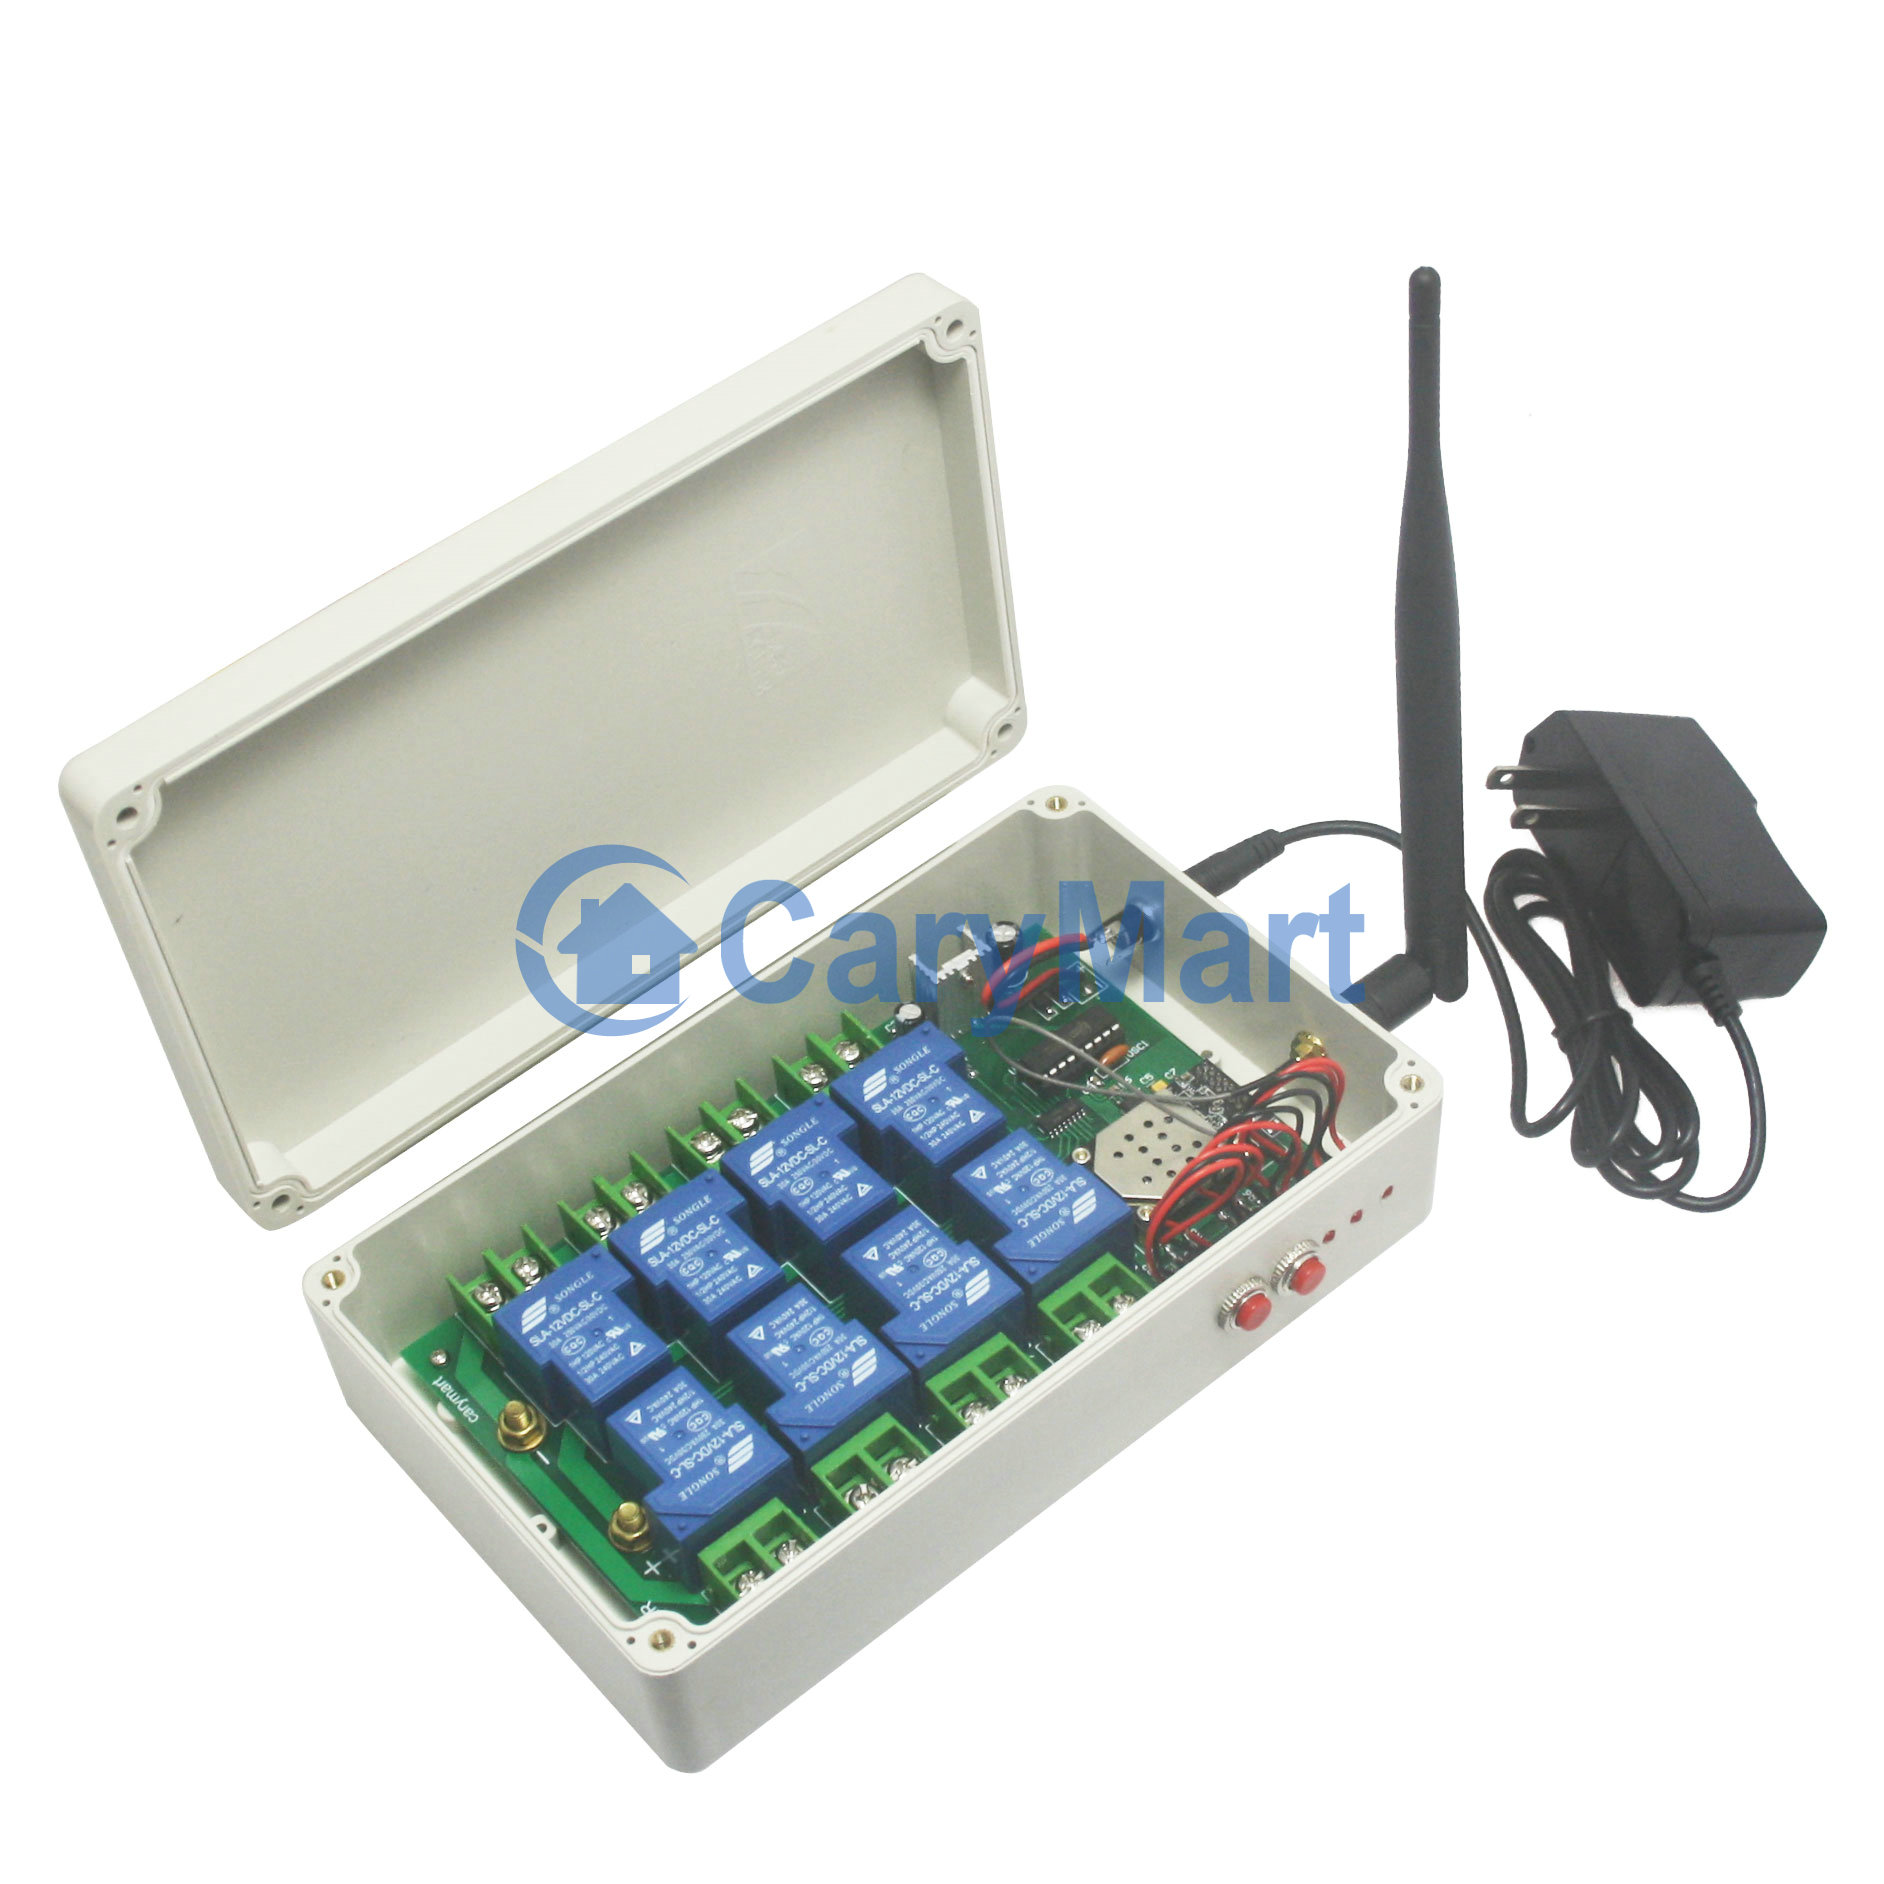 Mobile Phone Smartphone WIFI Controller for Android or iOS